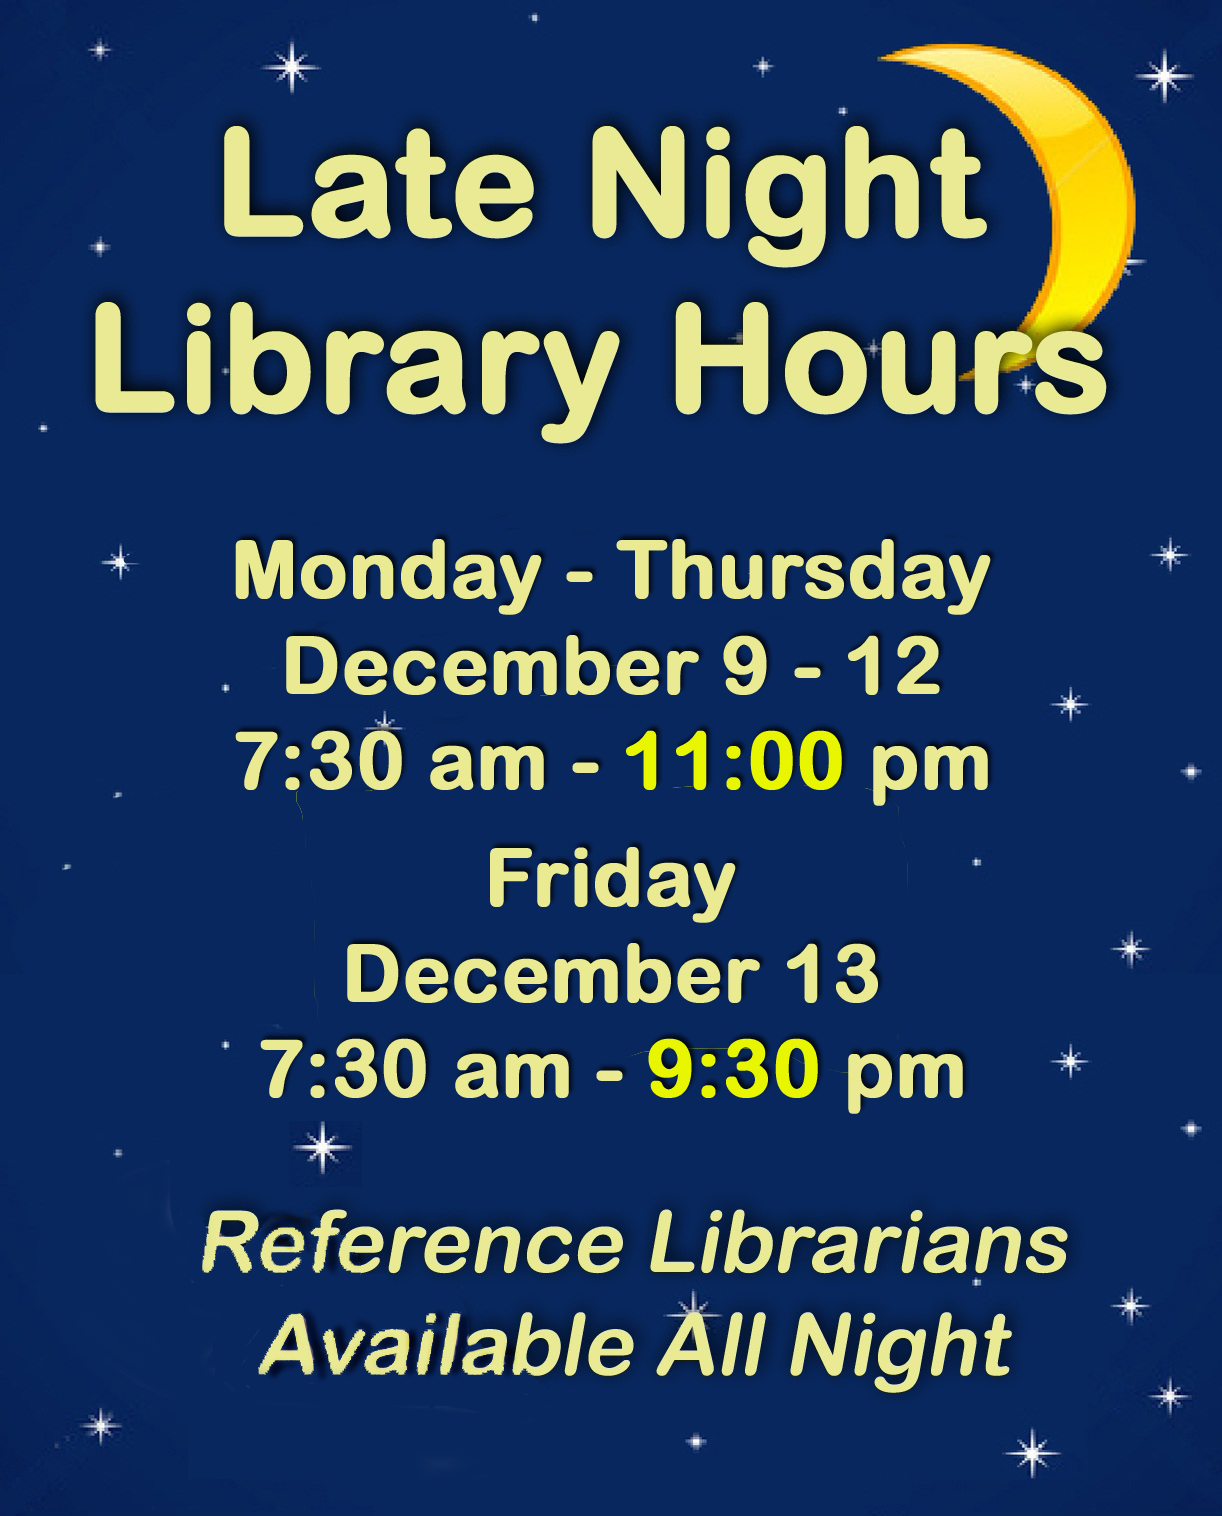 late night hours: mon-thurs until 11 pm, Friday until 9:30pm, starts 12/9